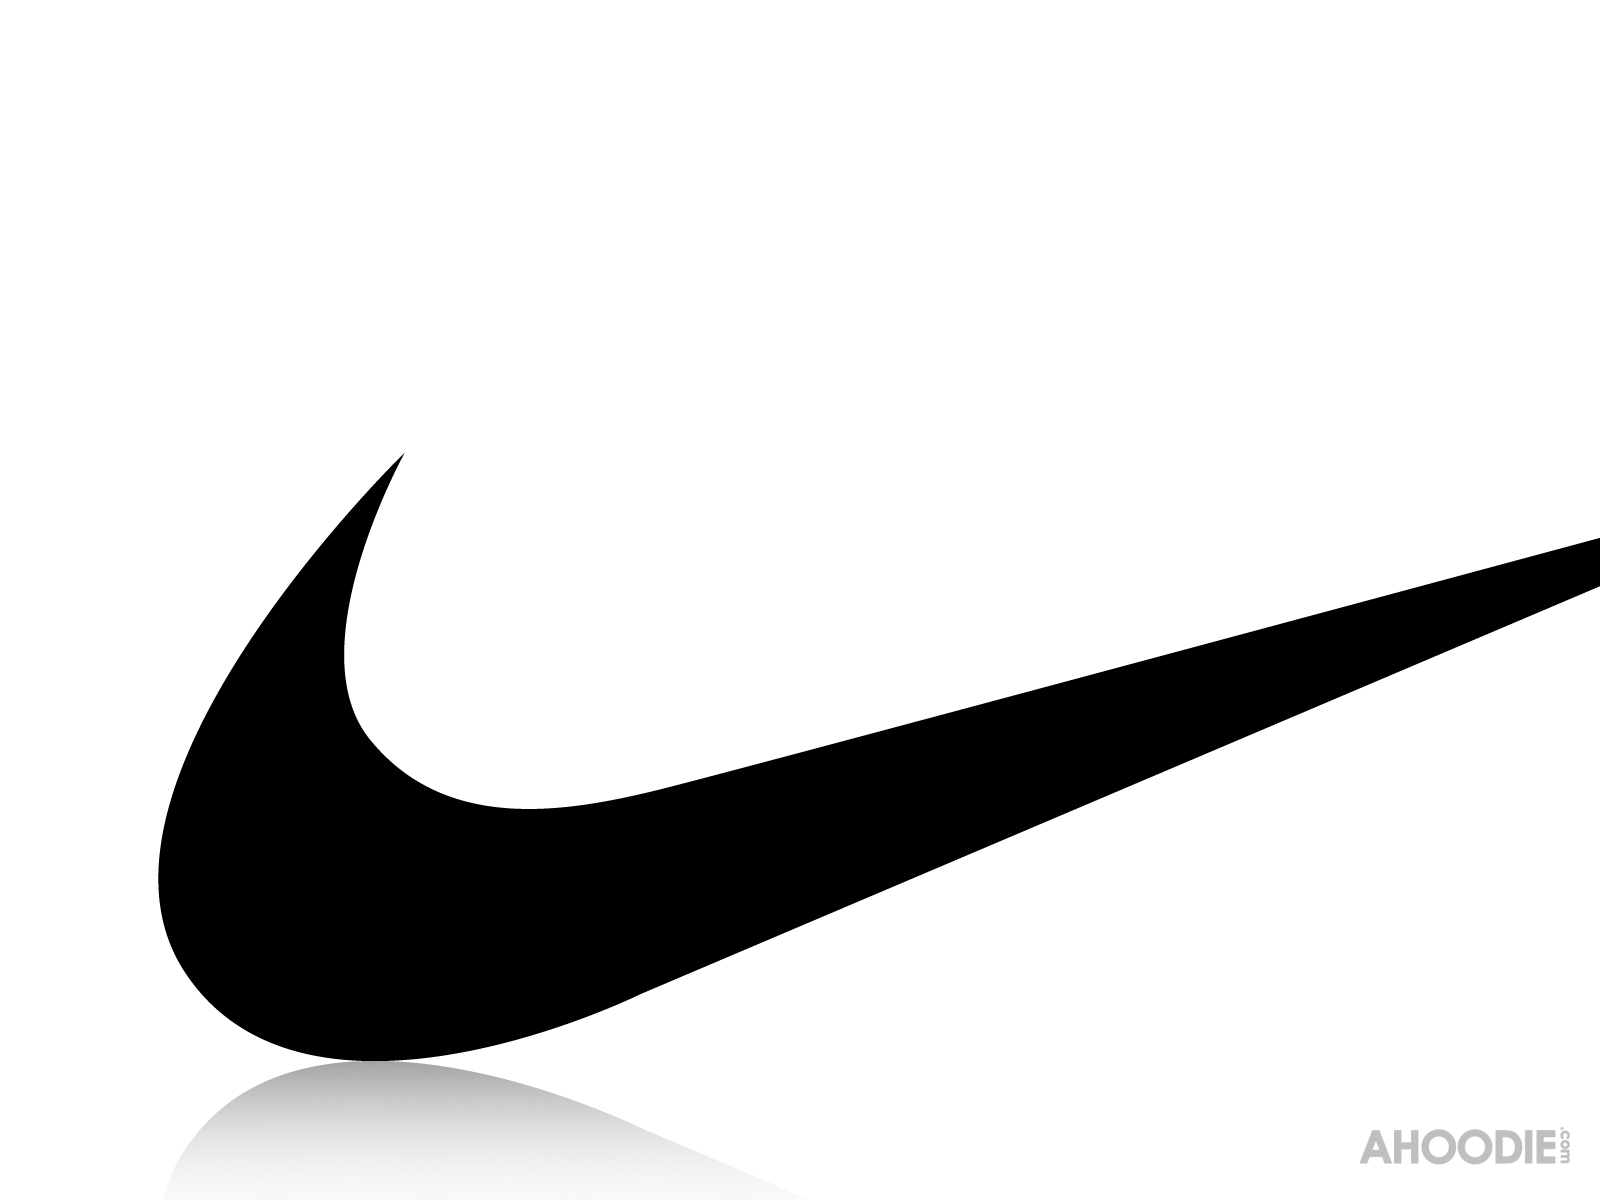 Free Nike Cliparts, Download Free Clip Art, Free Clip Art on.